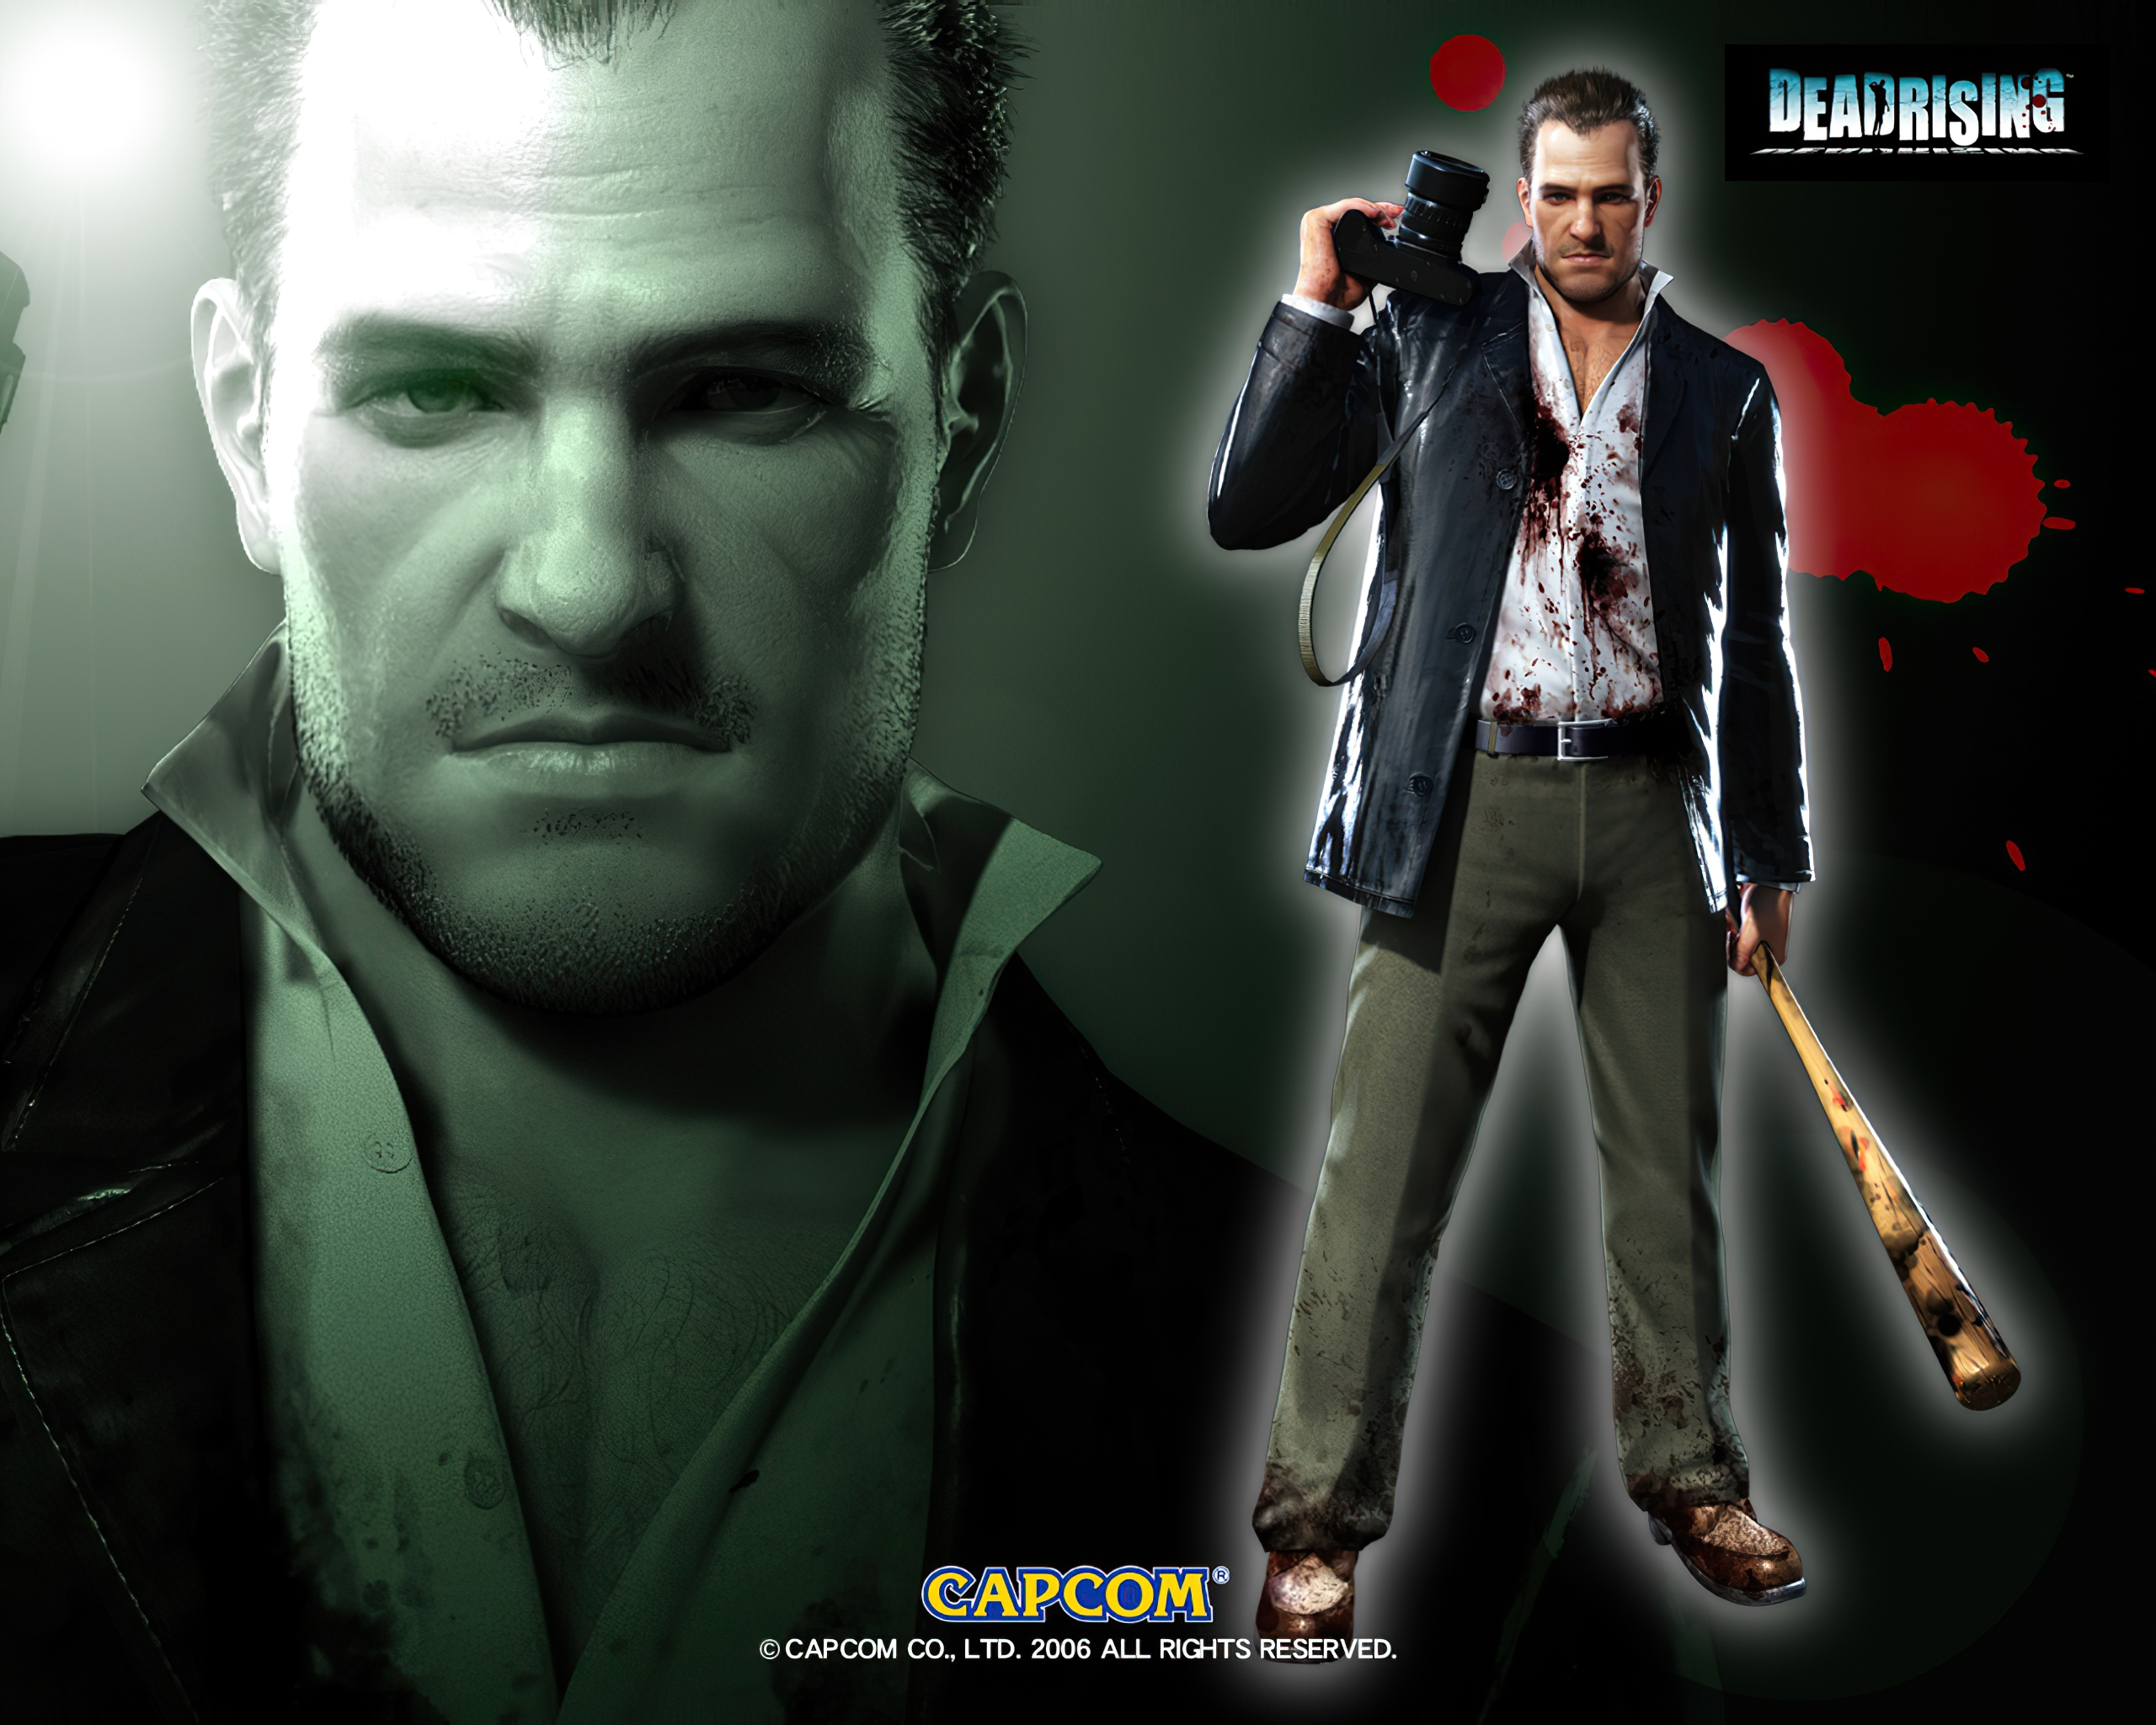 Dead Rising 4 Wallpaper: Frank West Wallpaper And Background Image